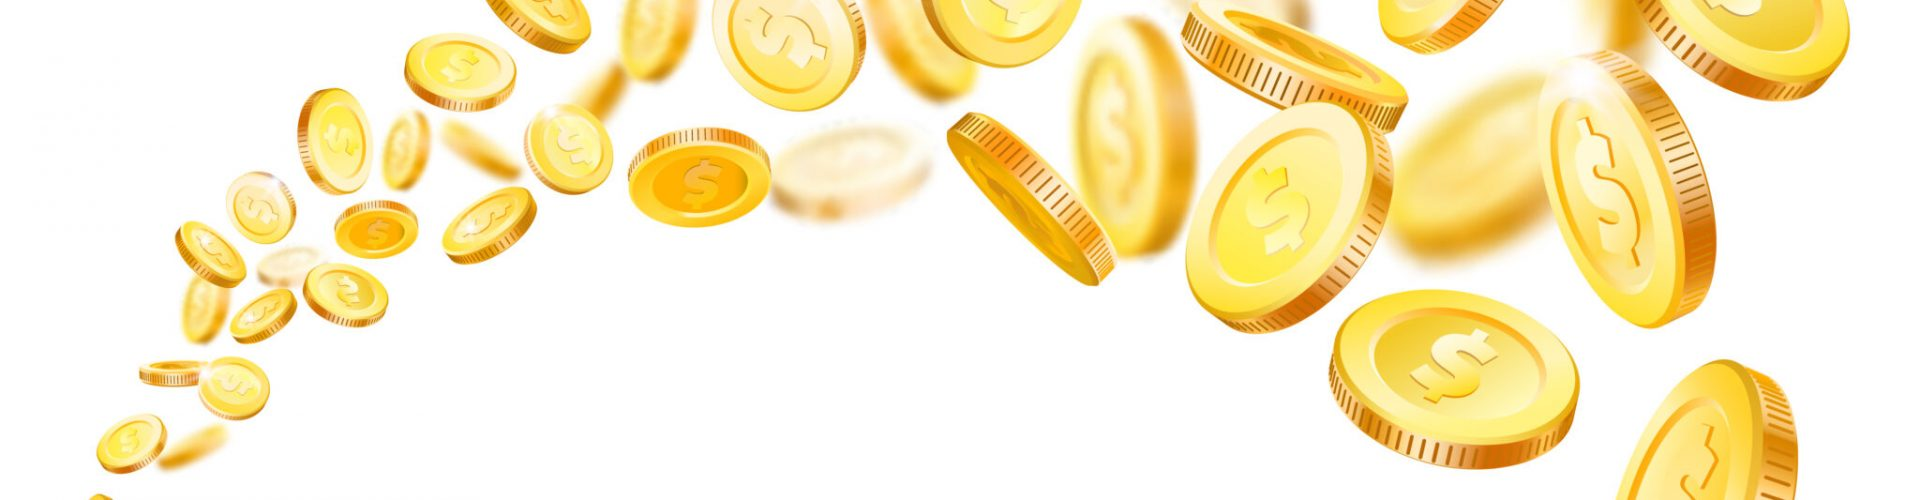 Flying coins. Gold coin fly at stream market profit. Gambling winner casino jackpot golden money falling flow treasure prize dollar cash. Finance investment realistic 3d vector isolated illustration